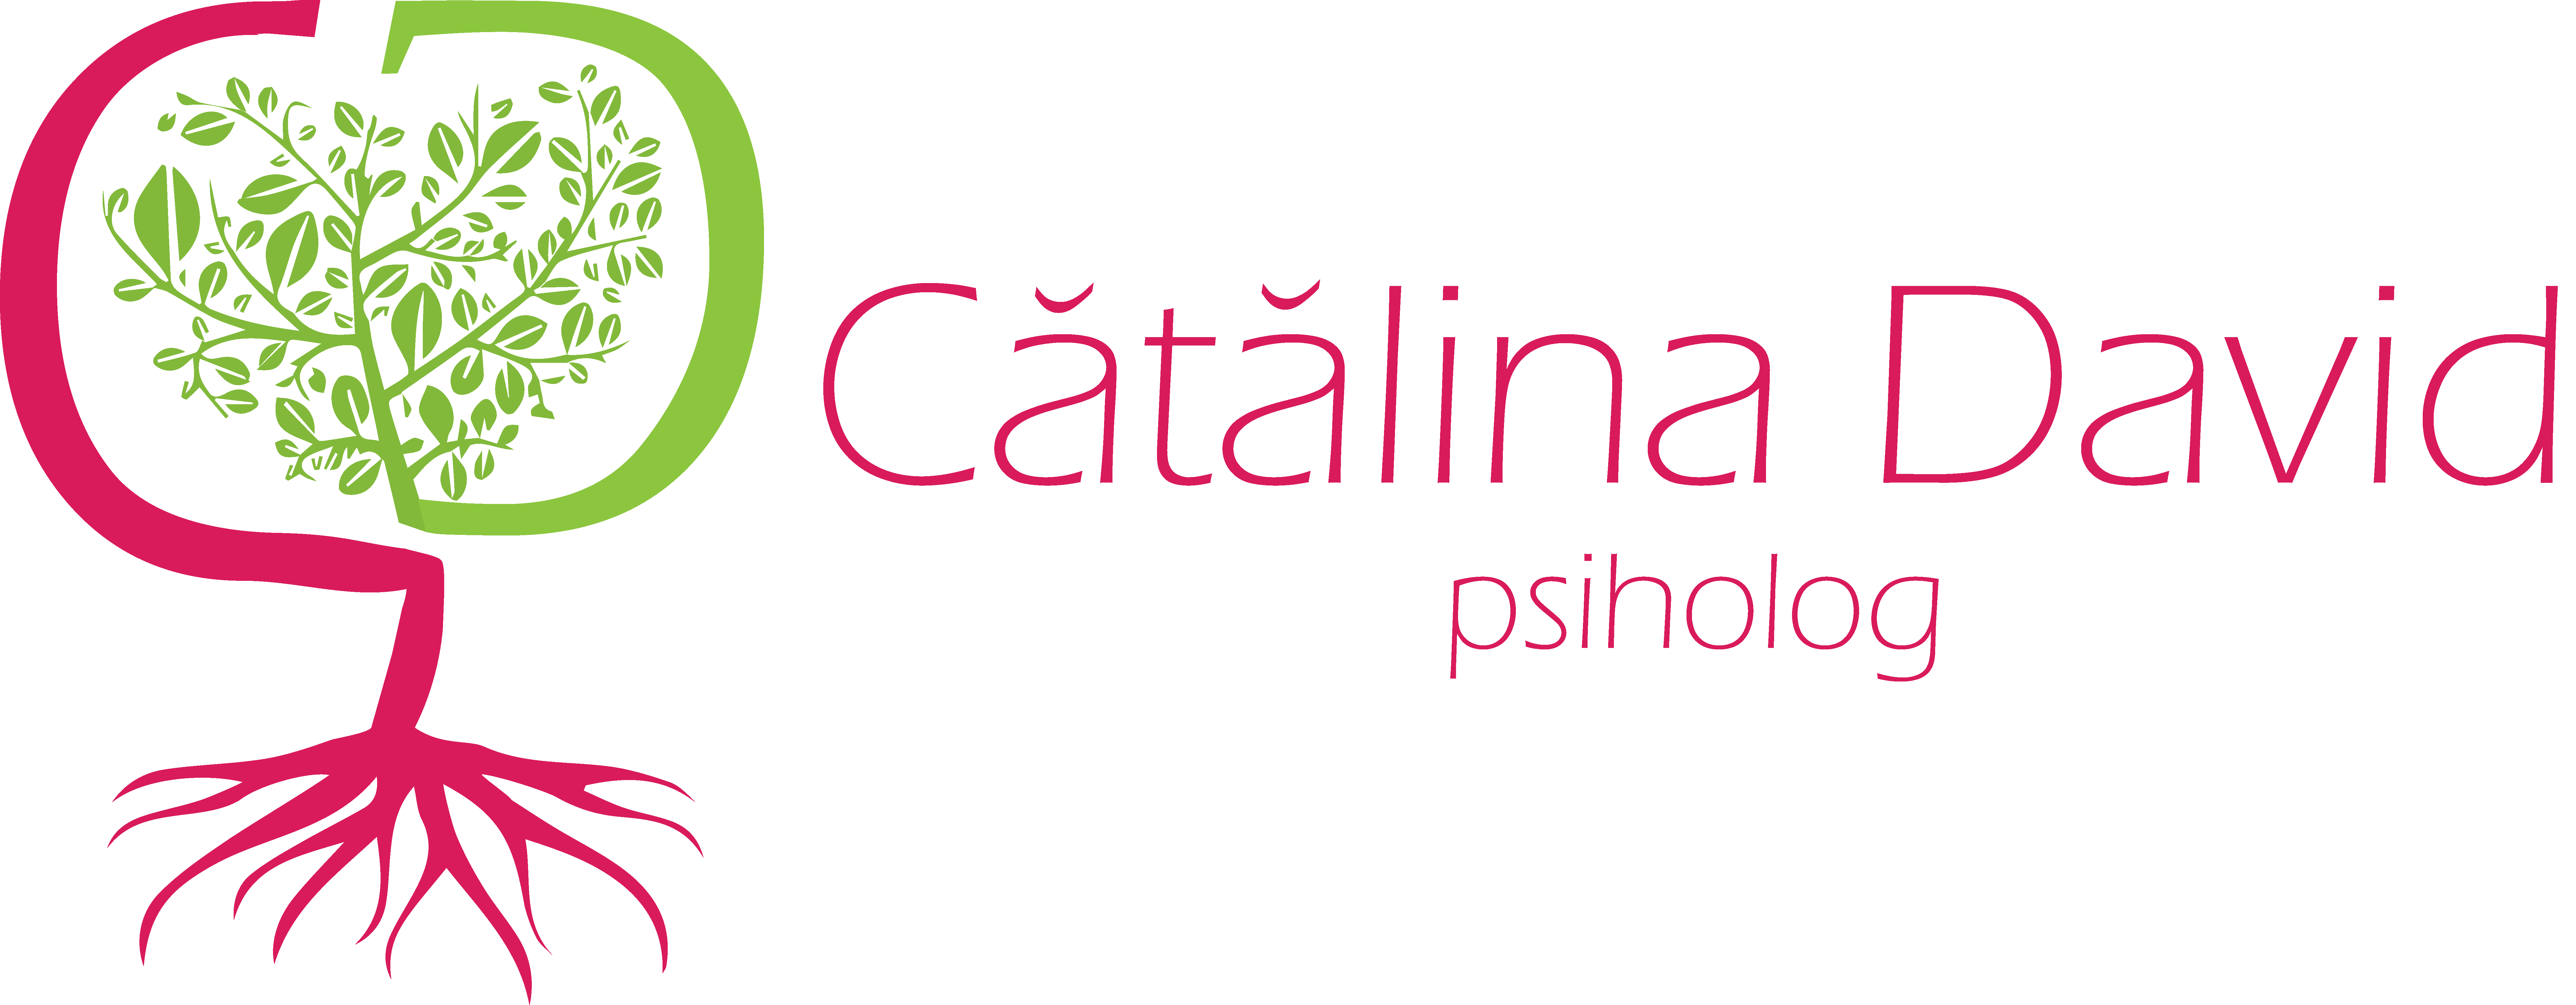 Psiholog Catalina David